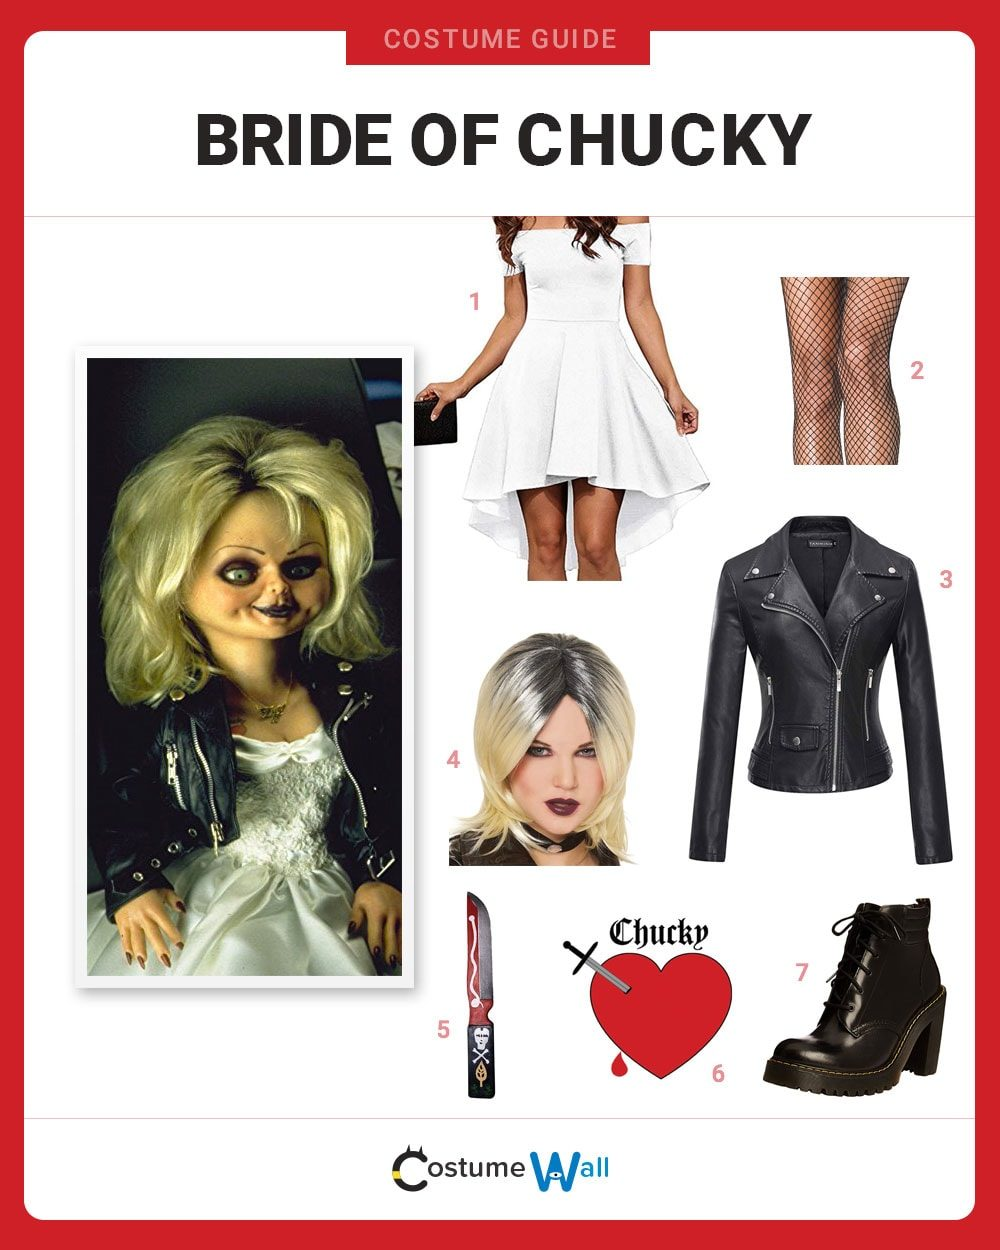 Bride of Chucky Costume Guide